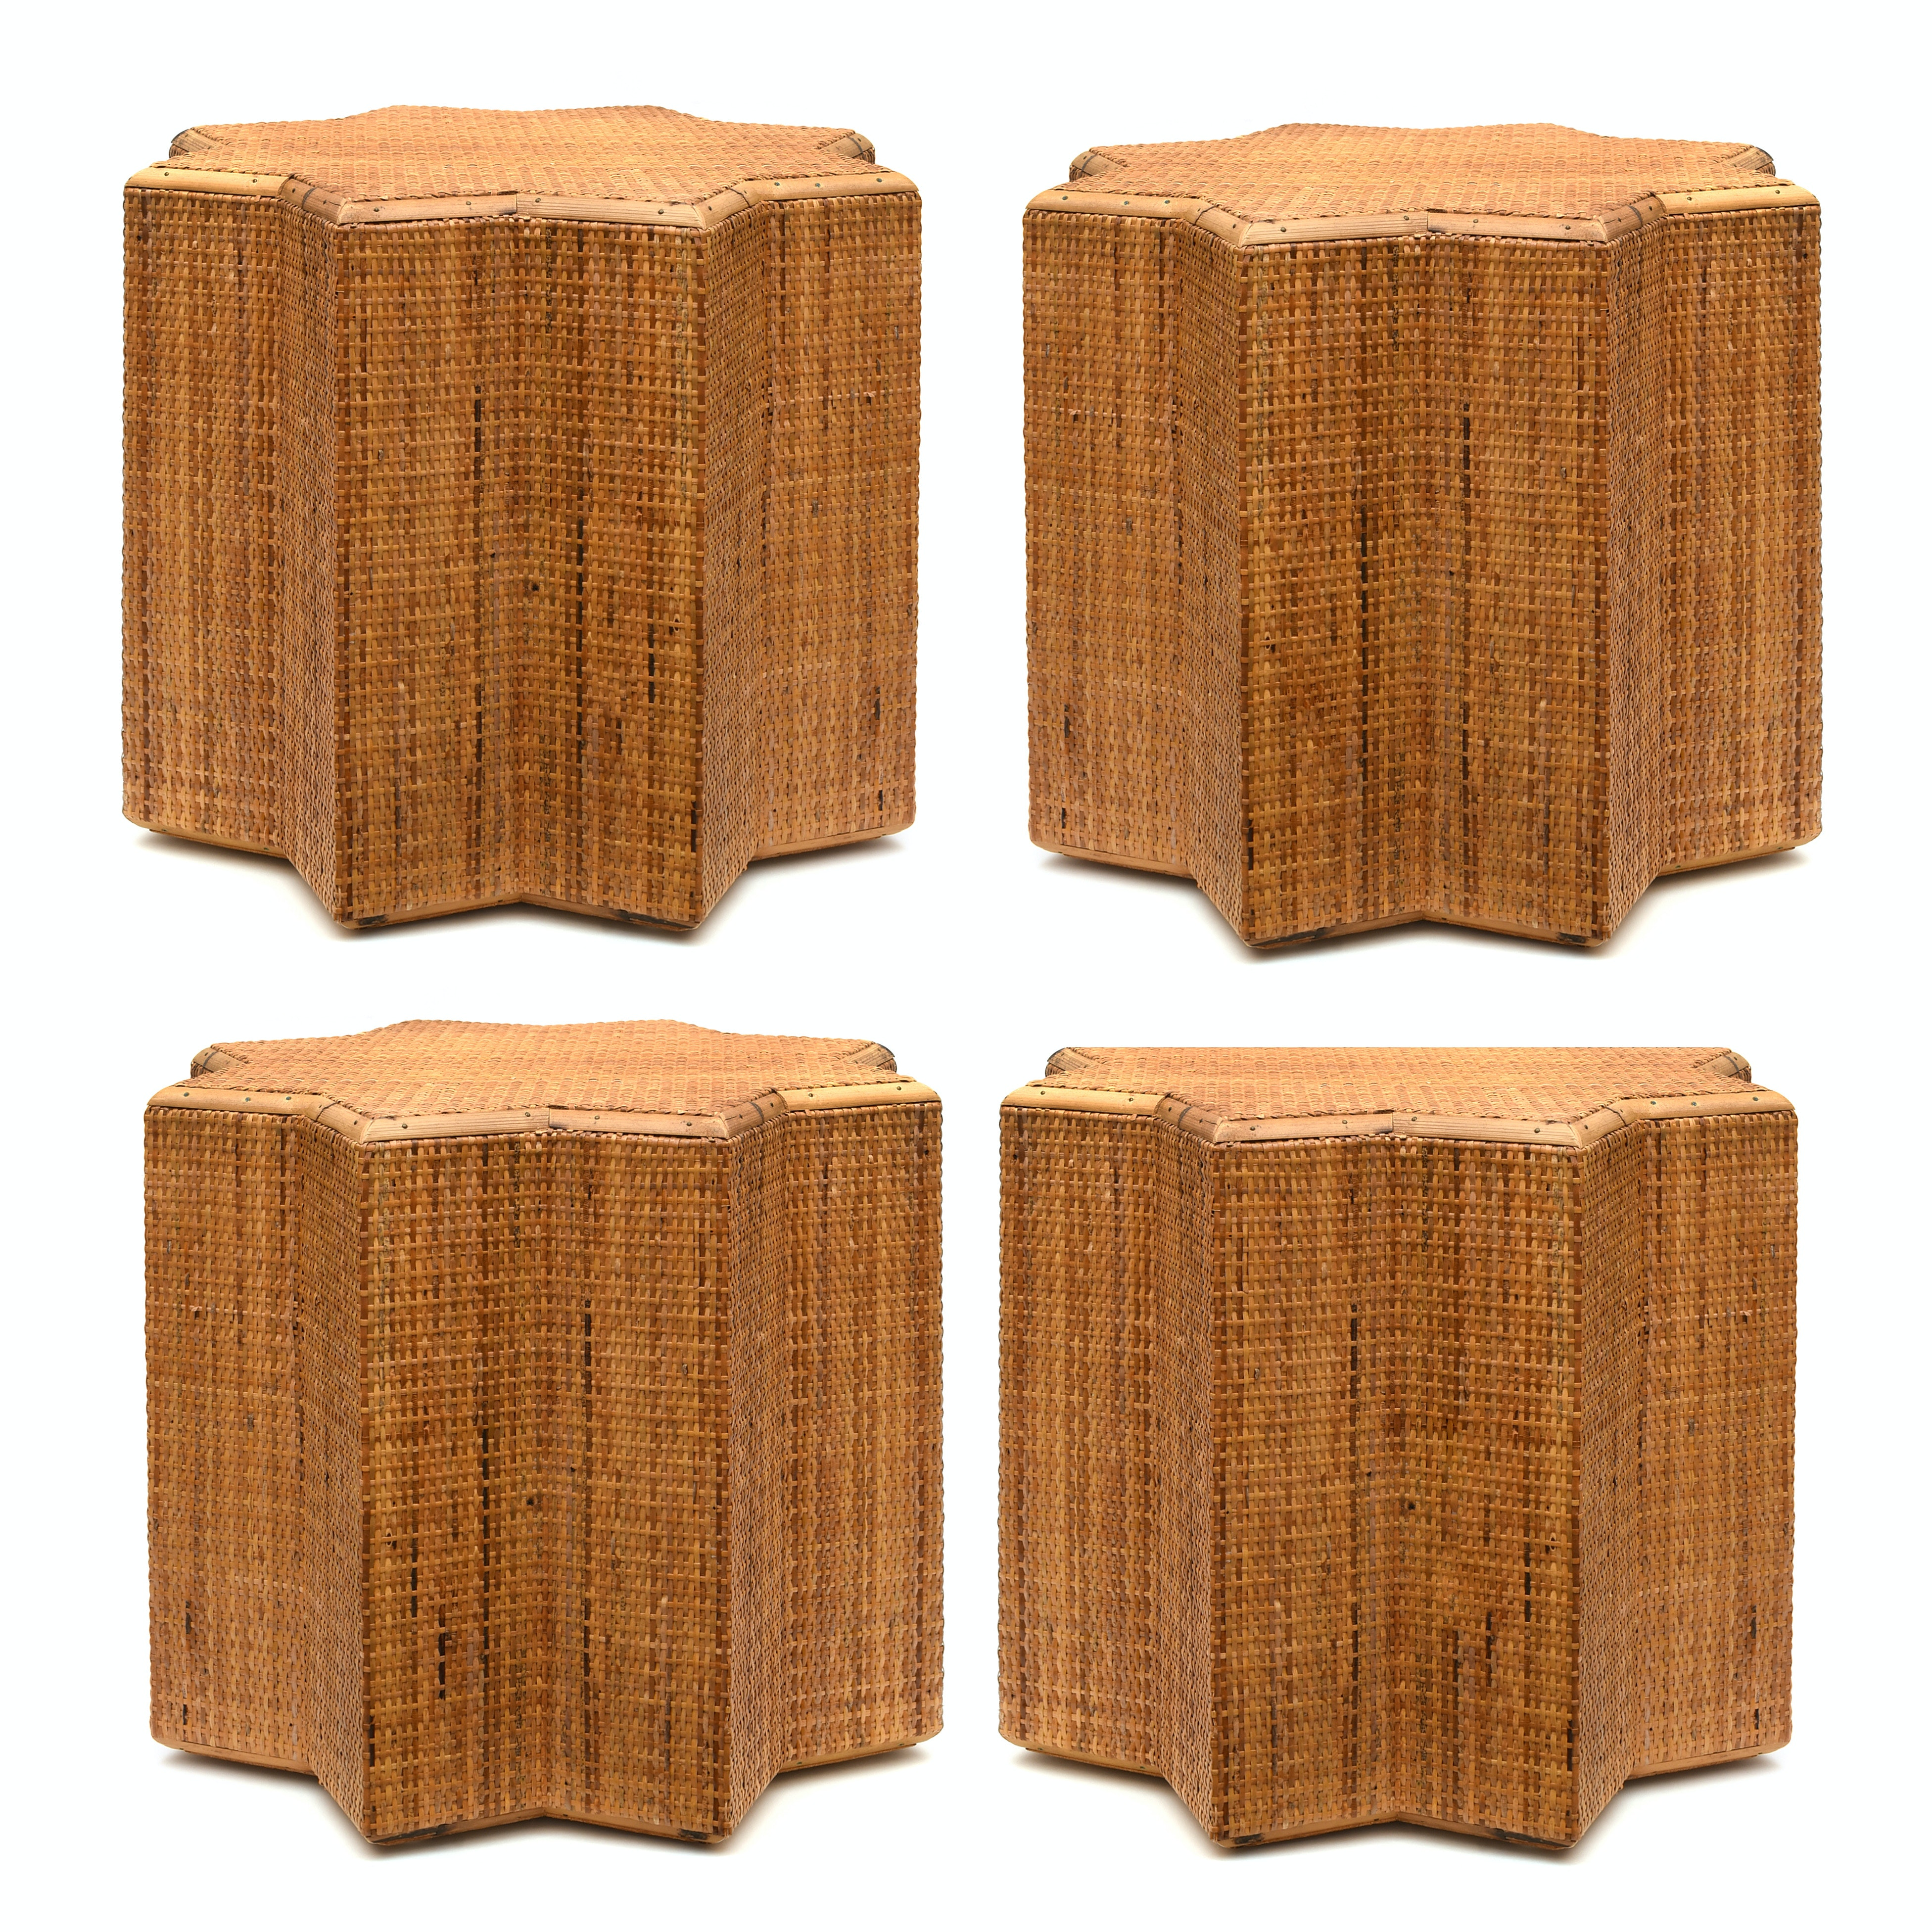 Four Contemporary Wood and Rattan End Tables